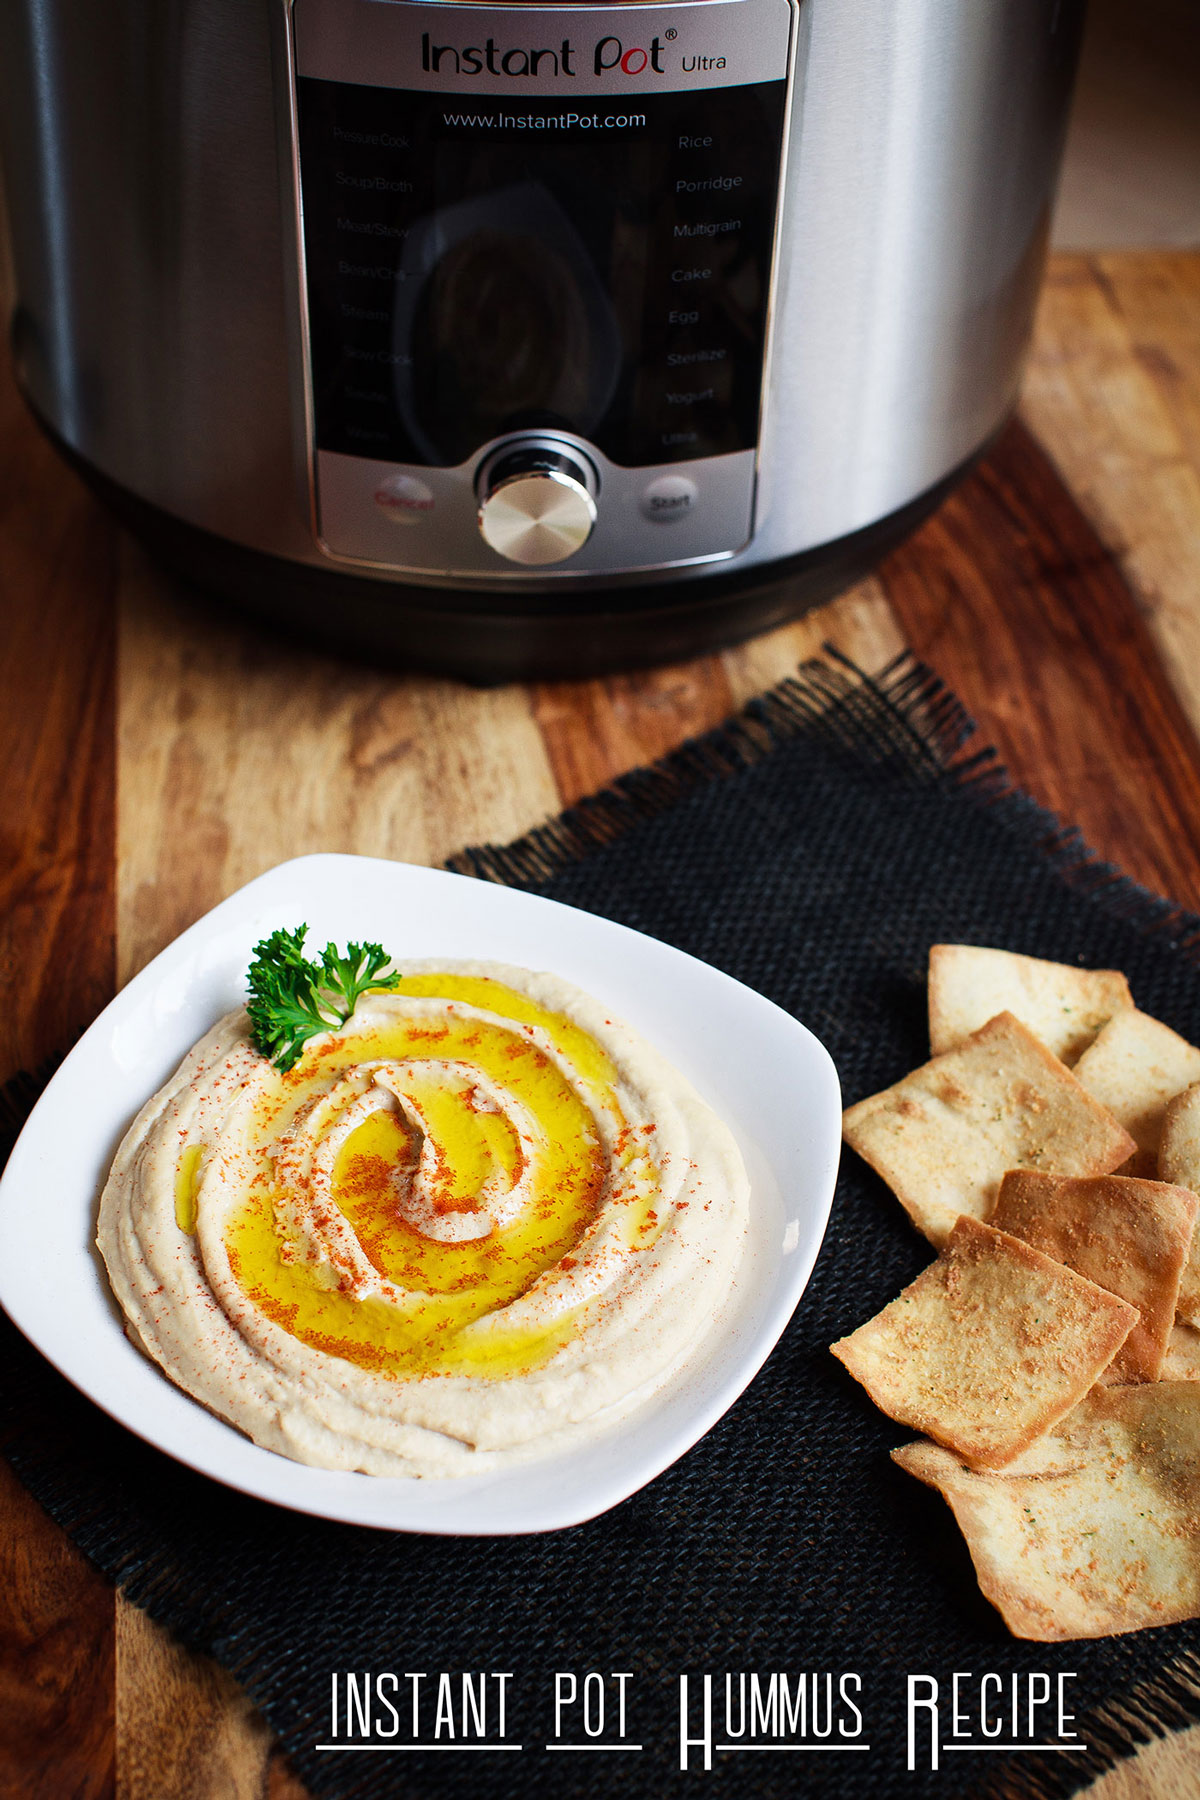 Instant Pot Hummus Recipe